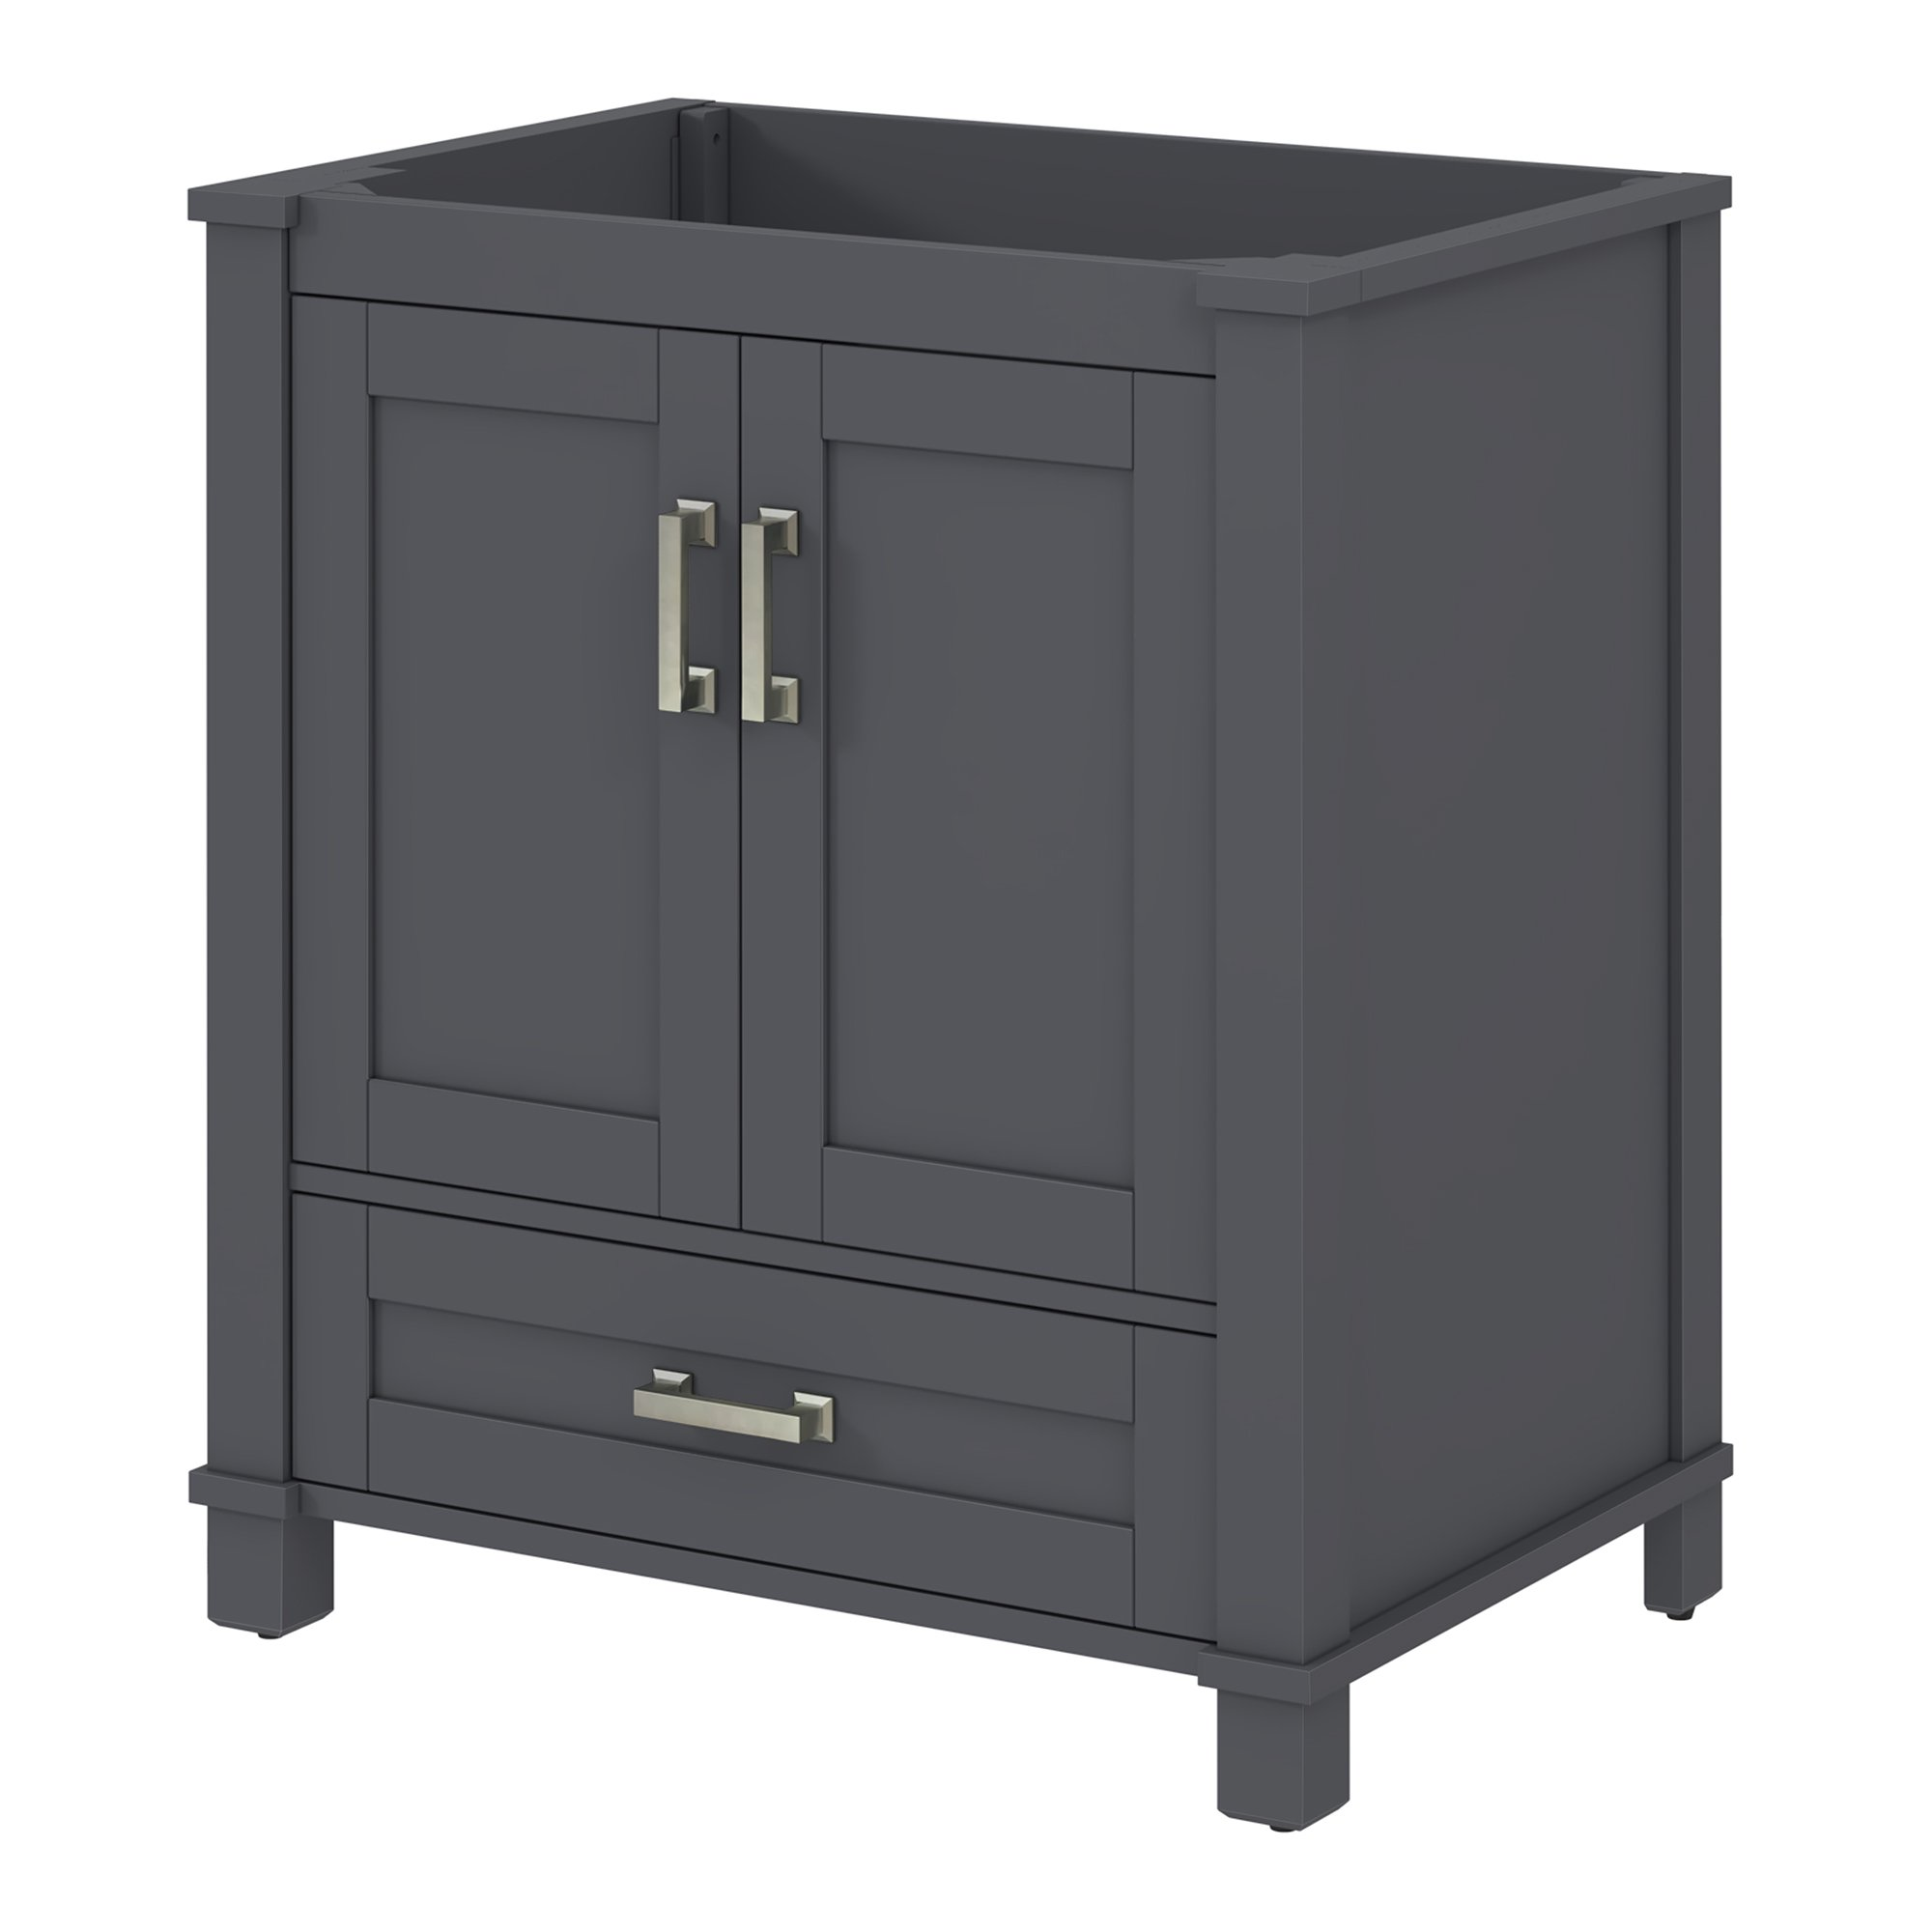 Bathroom vanities 30 inch Single Sink Sonata Bay Cool Gray Single Sink Bathroom Vanity Base 30inch Walmartcom Walmart Sonata Bay Cool Gray Single Sink Bathroom Vanity Base 30inch